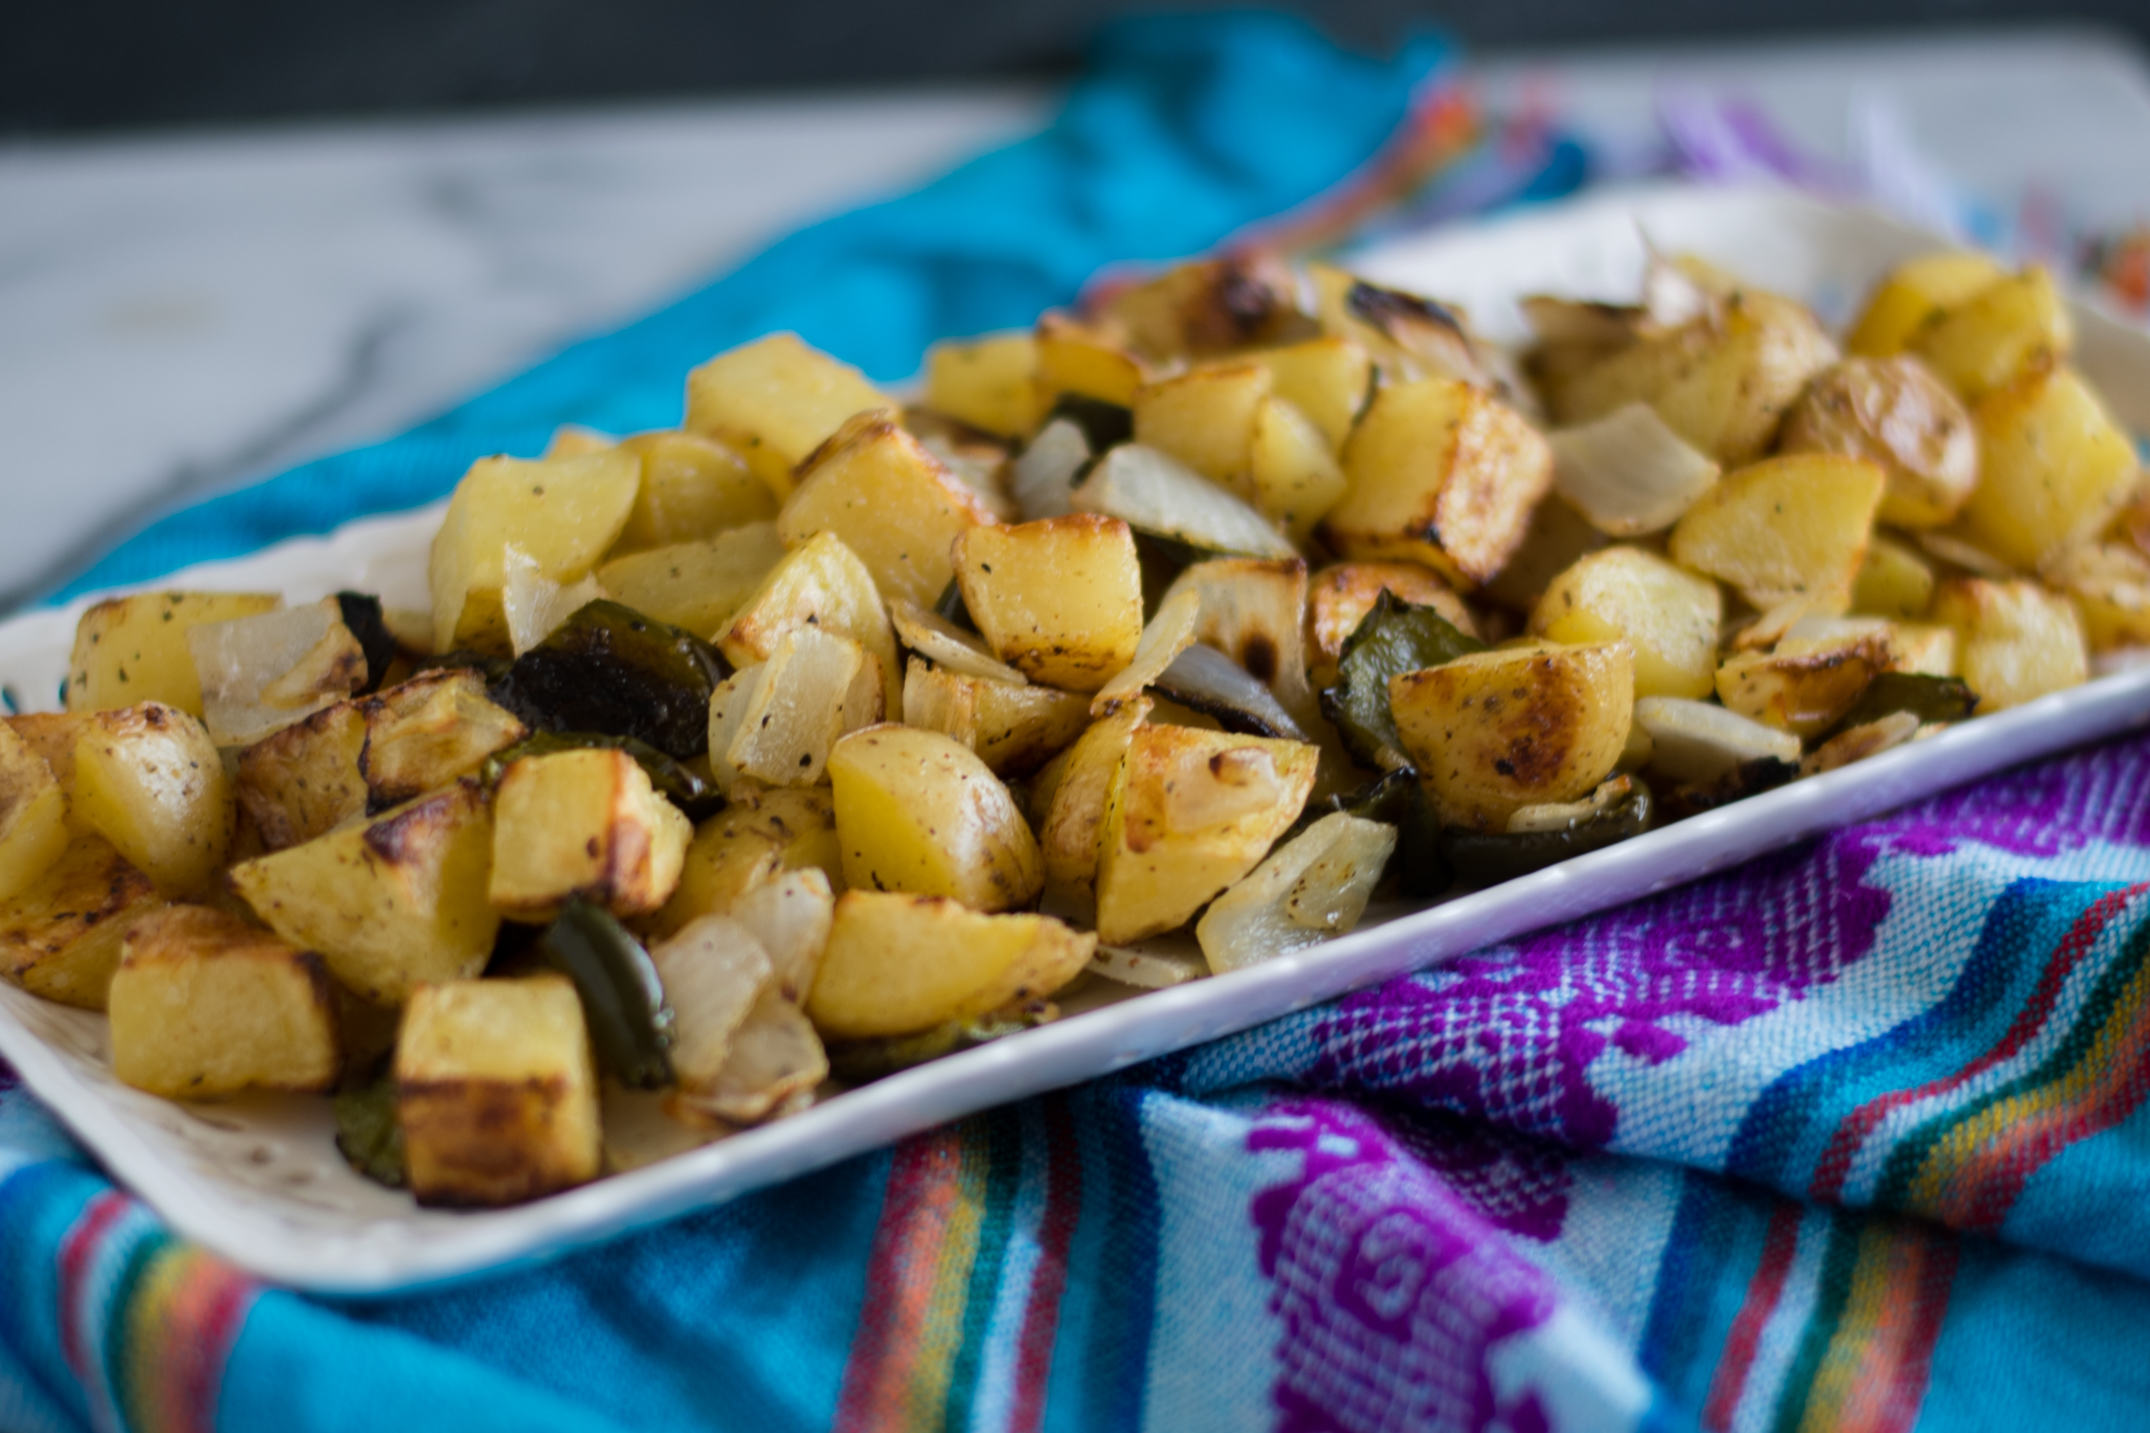 Roasted Breakfast Potatoes are the perfect accompaniment on your breakfast plate! #vegan #breakfast #side #potatoes